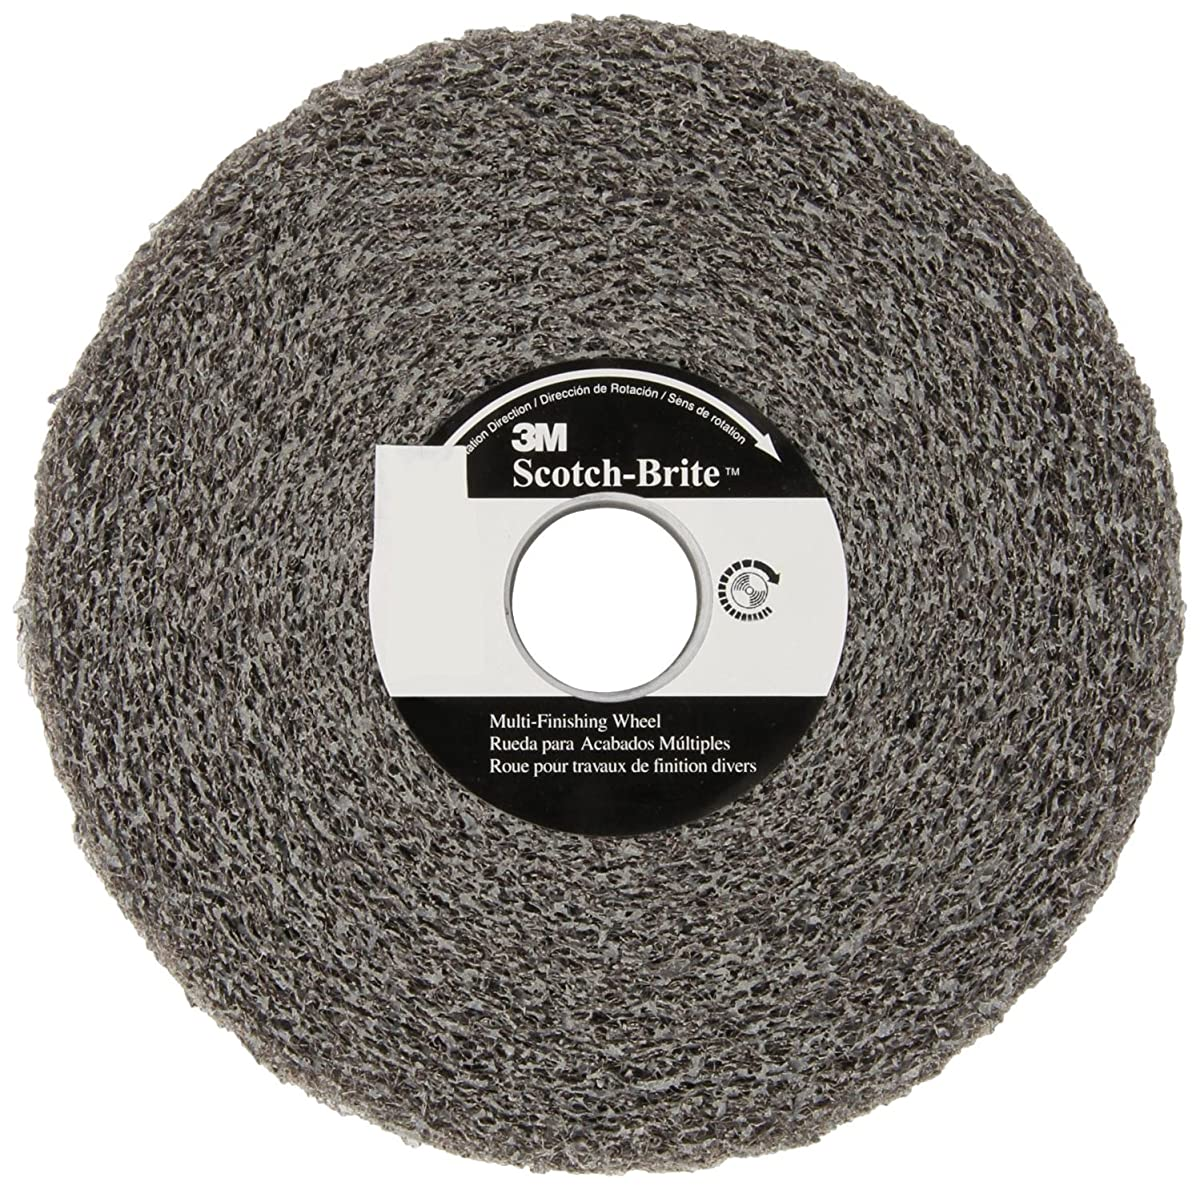 Scotch-Brite(TM) Multi-Finishing Wheel, Medium Grit (Pack of 1)